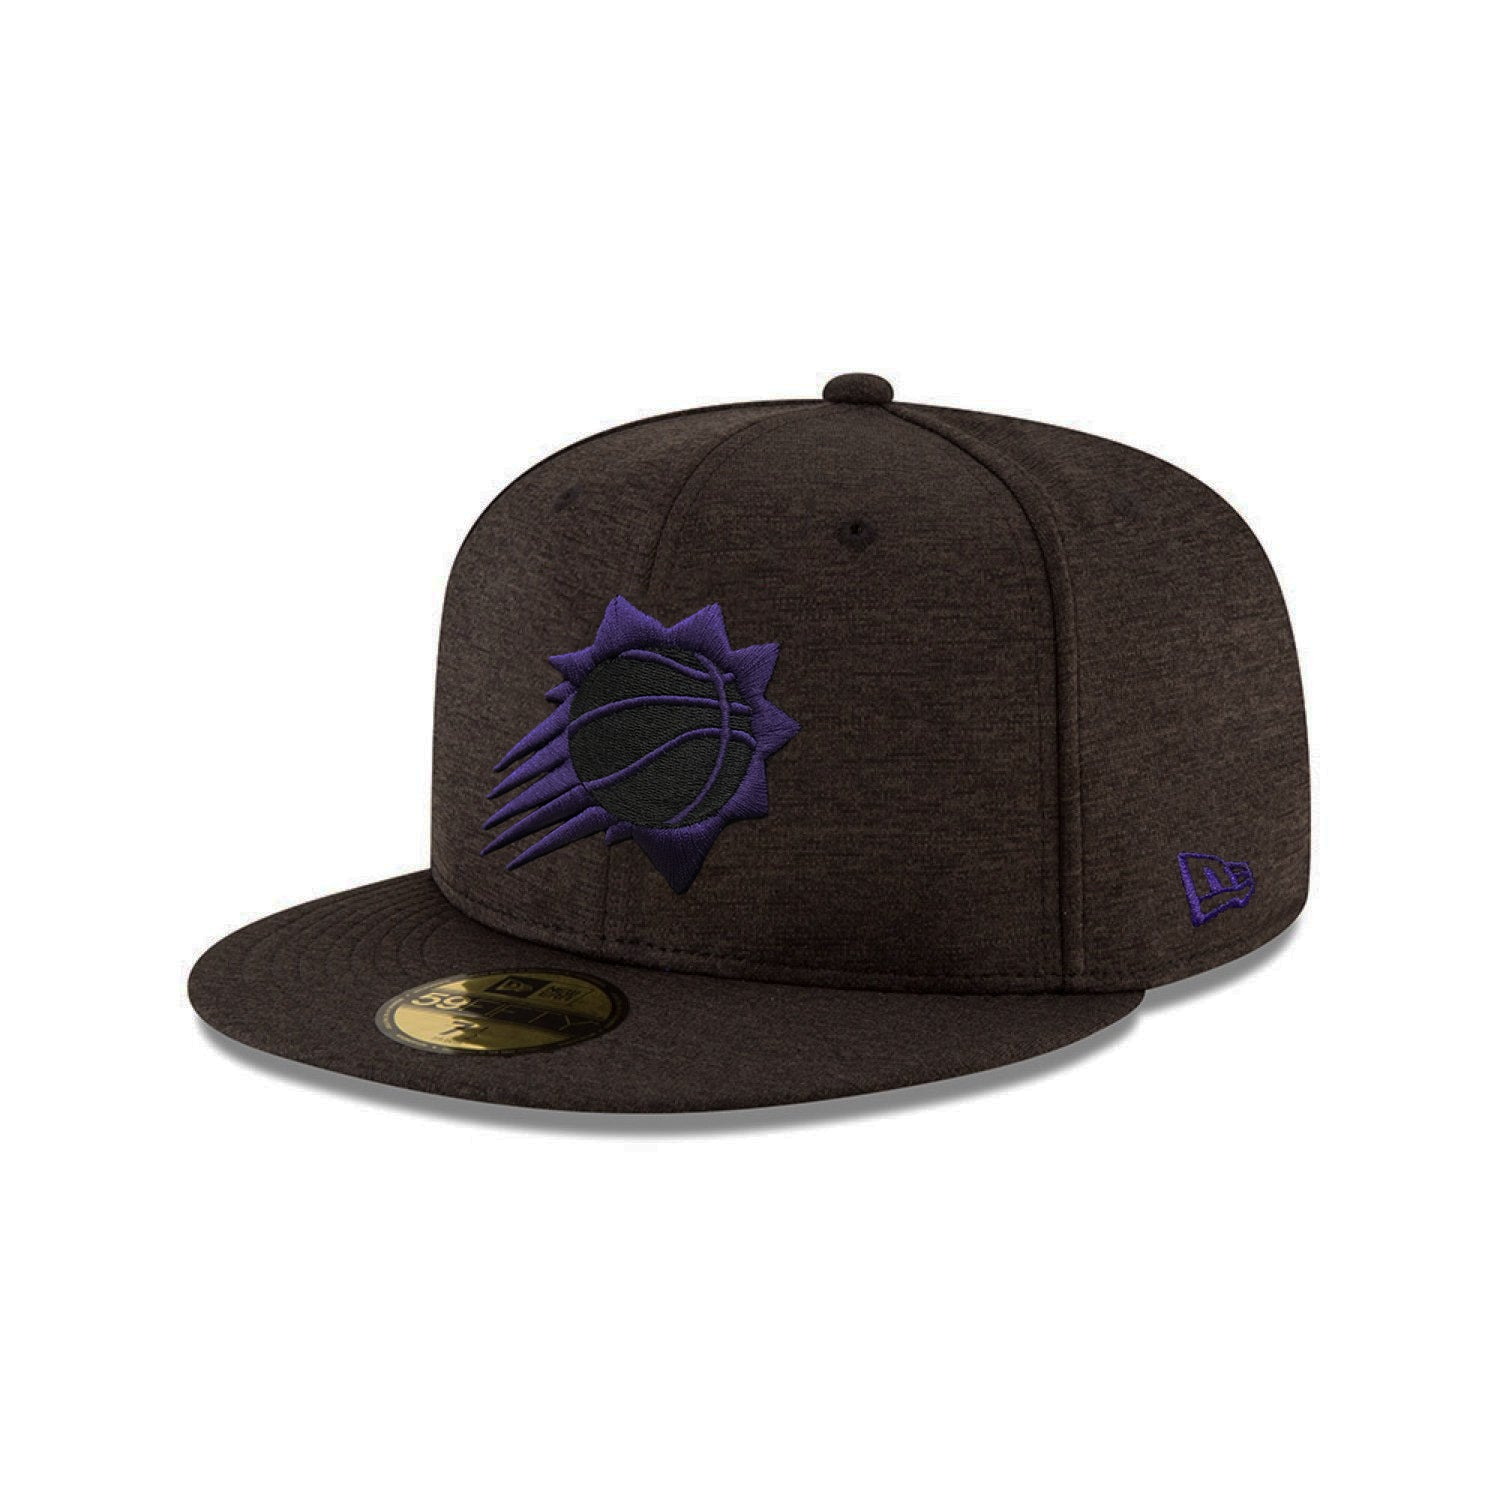 online store 905b7 d49b8 ... coupon code nba phoenix suns new era shadows 59fifty fitted hat 4e581  a0486